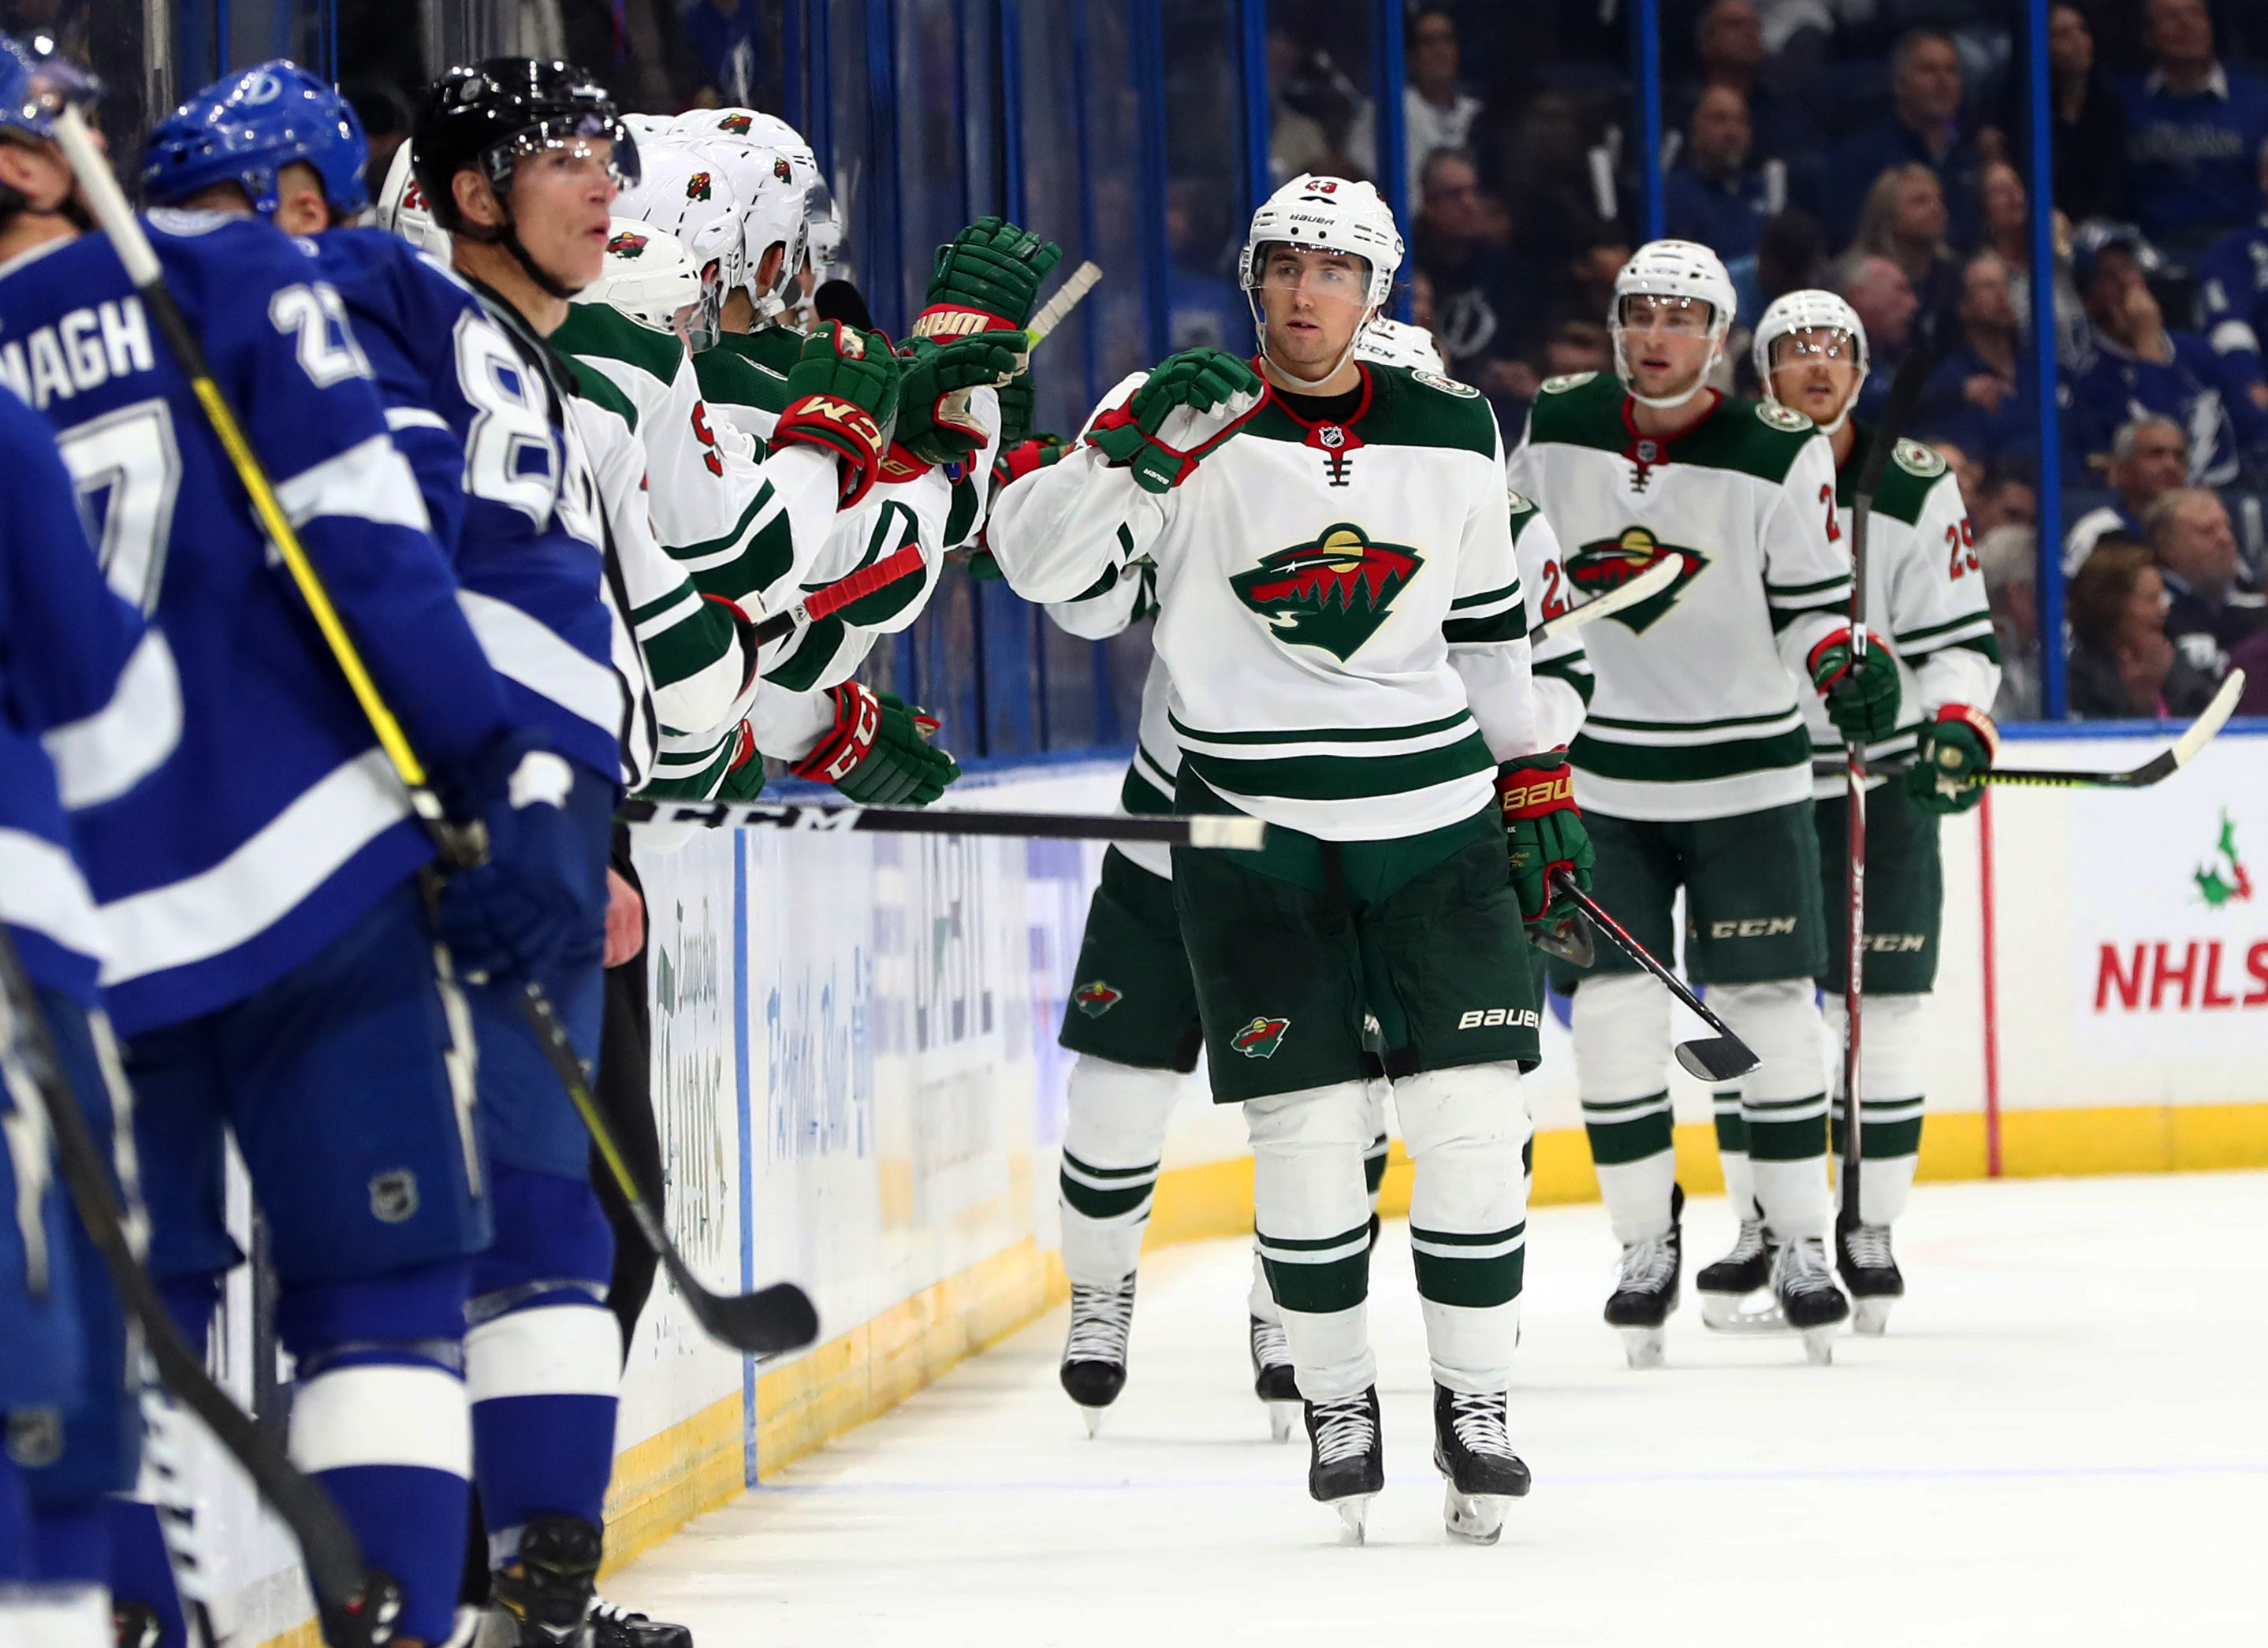 Game Preview: Minnesota Wild vs. Tampa Bay Lightning 1/16/20 @ 7:00PM CST at Xcel Energy Center